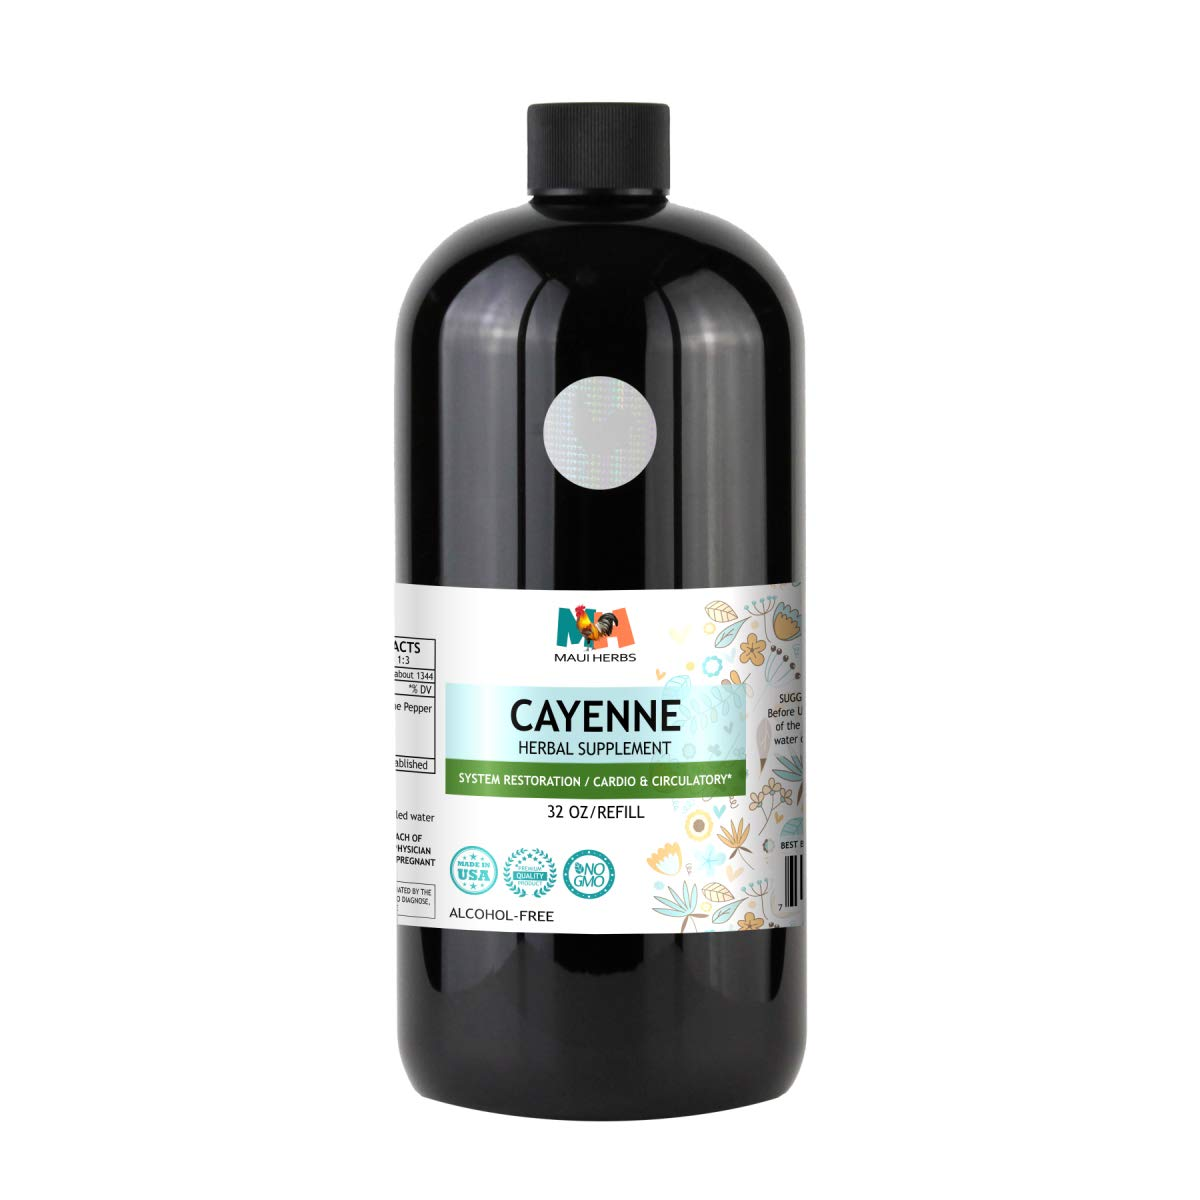 Cayenne Tincture Alcohol-Free Extract, Organic Cayenne Pepper (Capsicum annuum) (32 FL OZ)